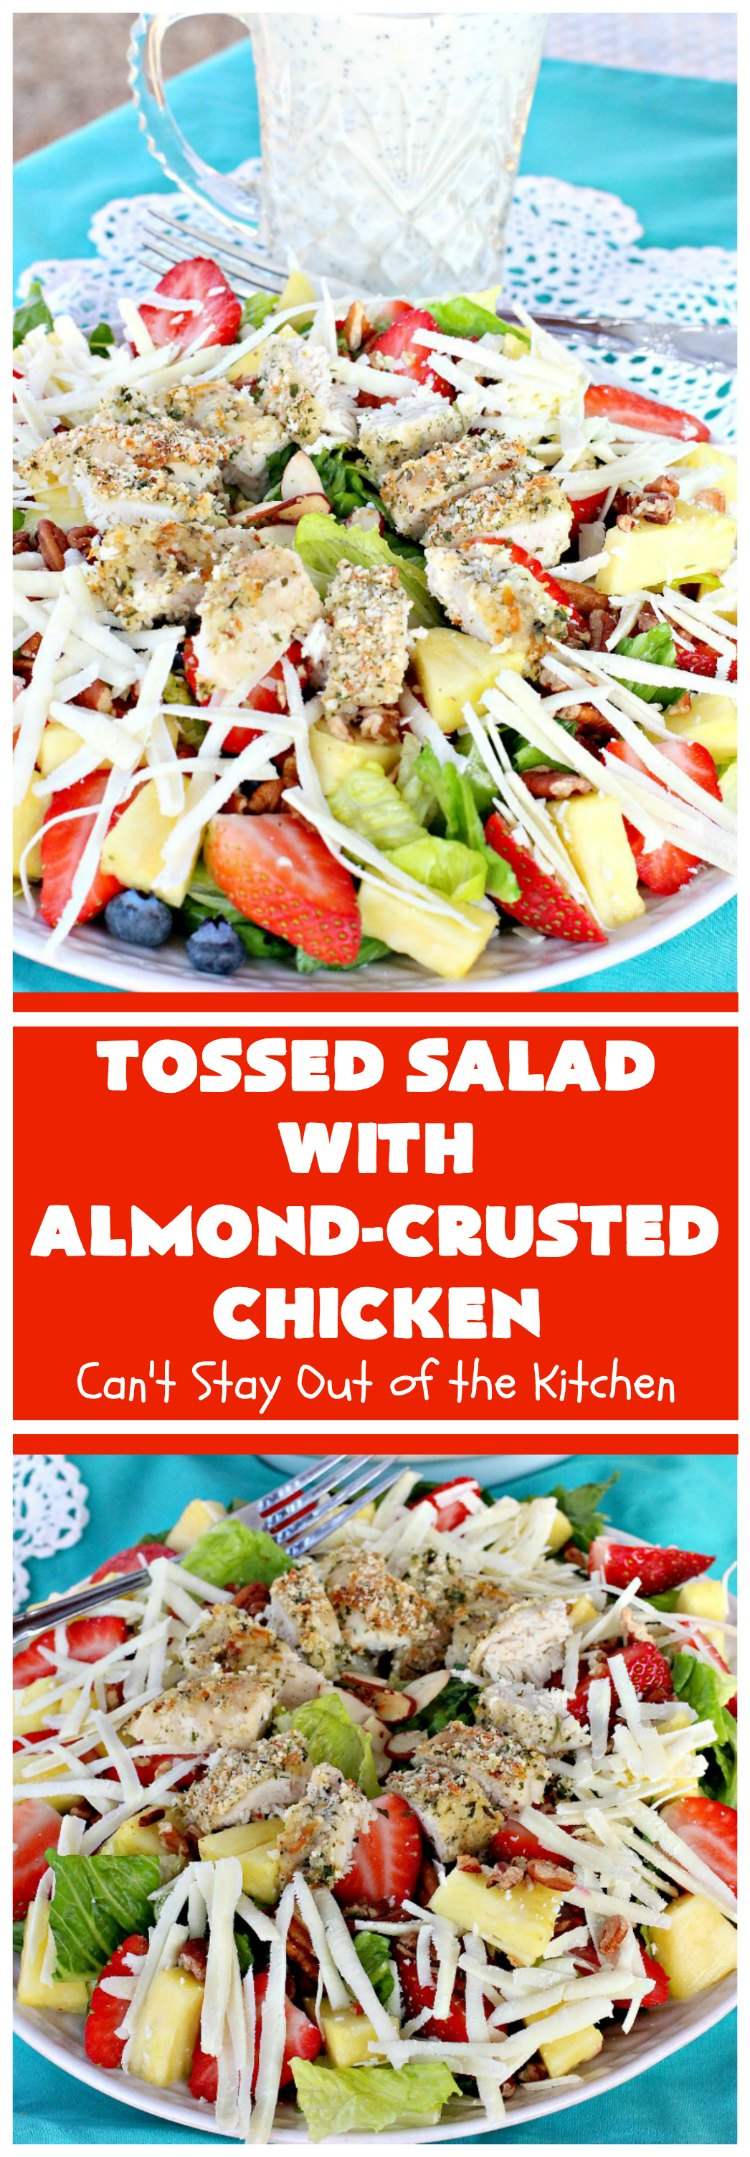 Tossed Salad with Almond-Crusted Chicken | Can't Stay Out of the Kitchen | this spectacular #salad is both healthy & delicious! It's filled with lots of fresh fruit including #blueberries, #strawberries & #pineapple. #chicken #glutenfree